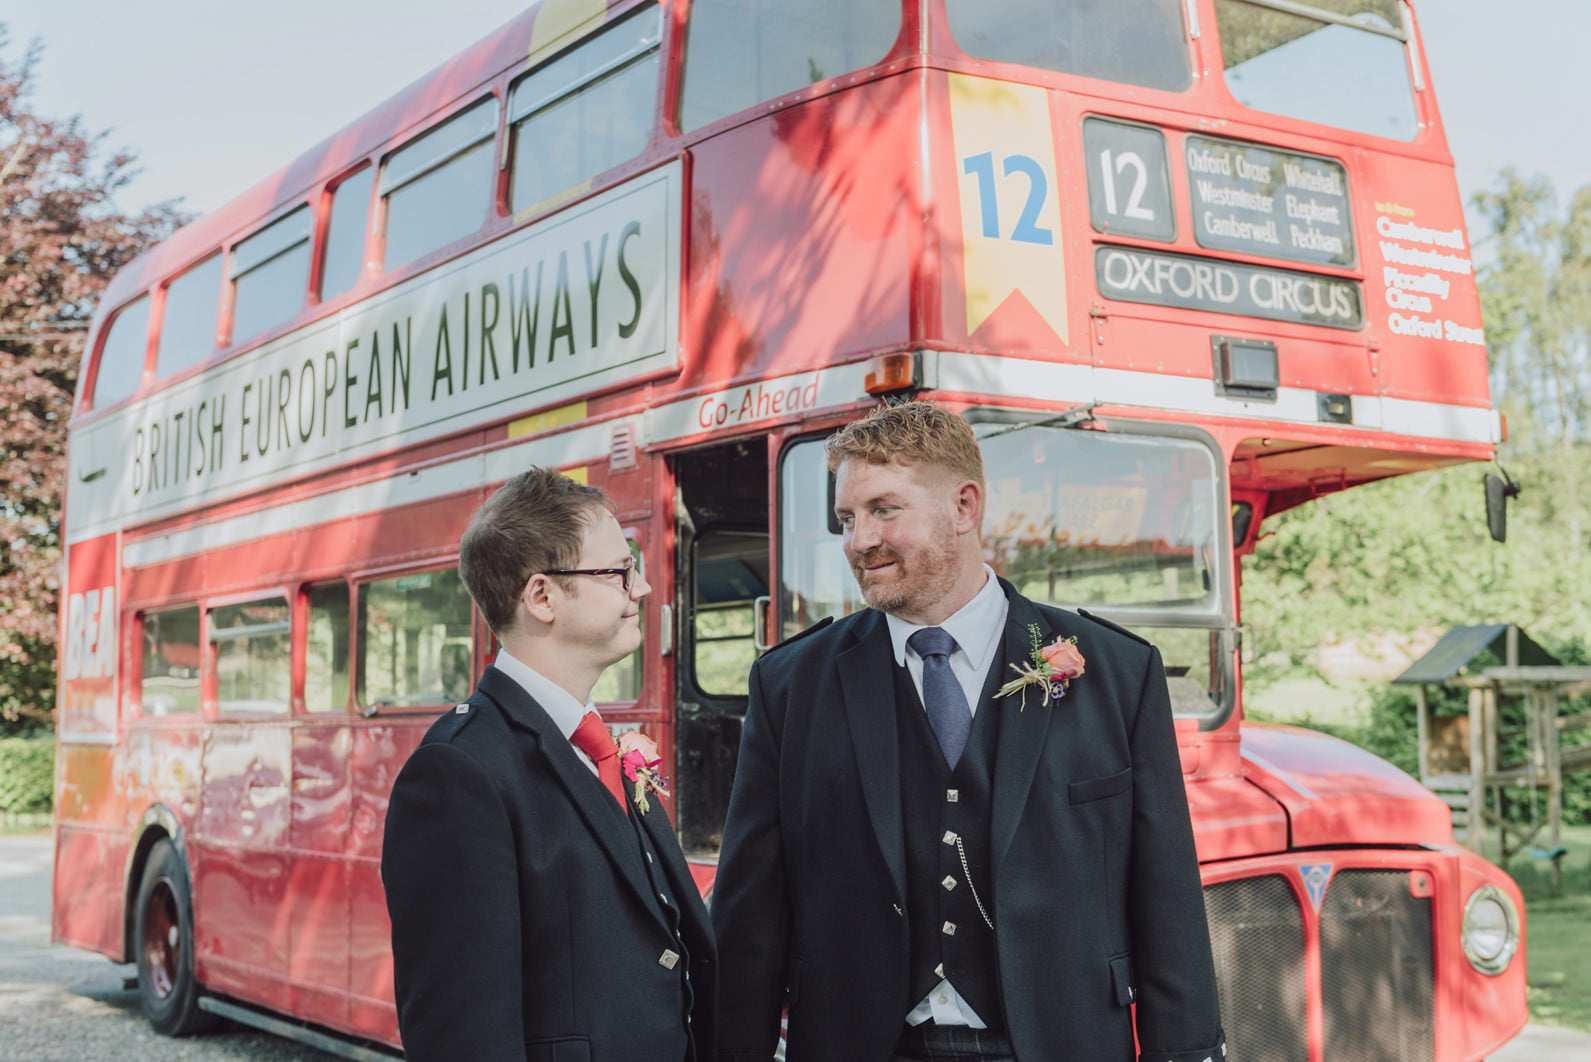 gay funfair wedding